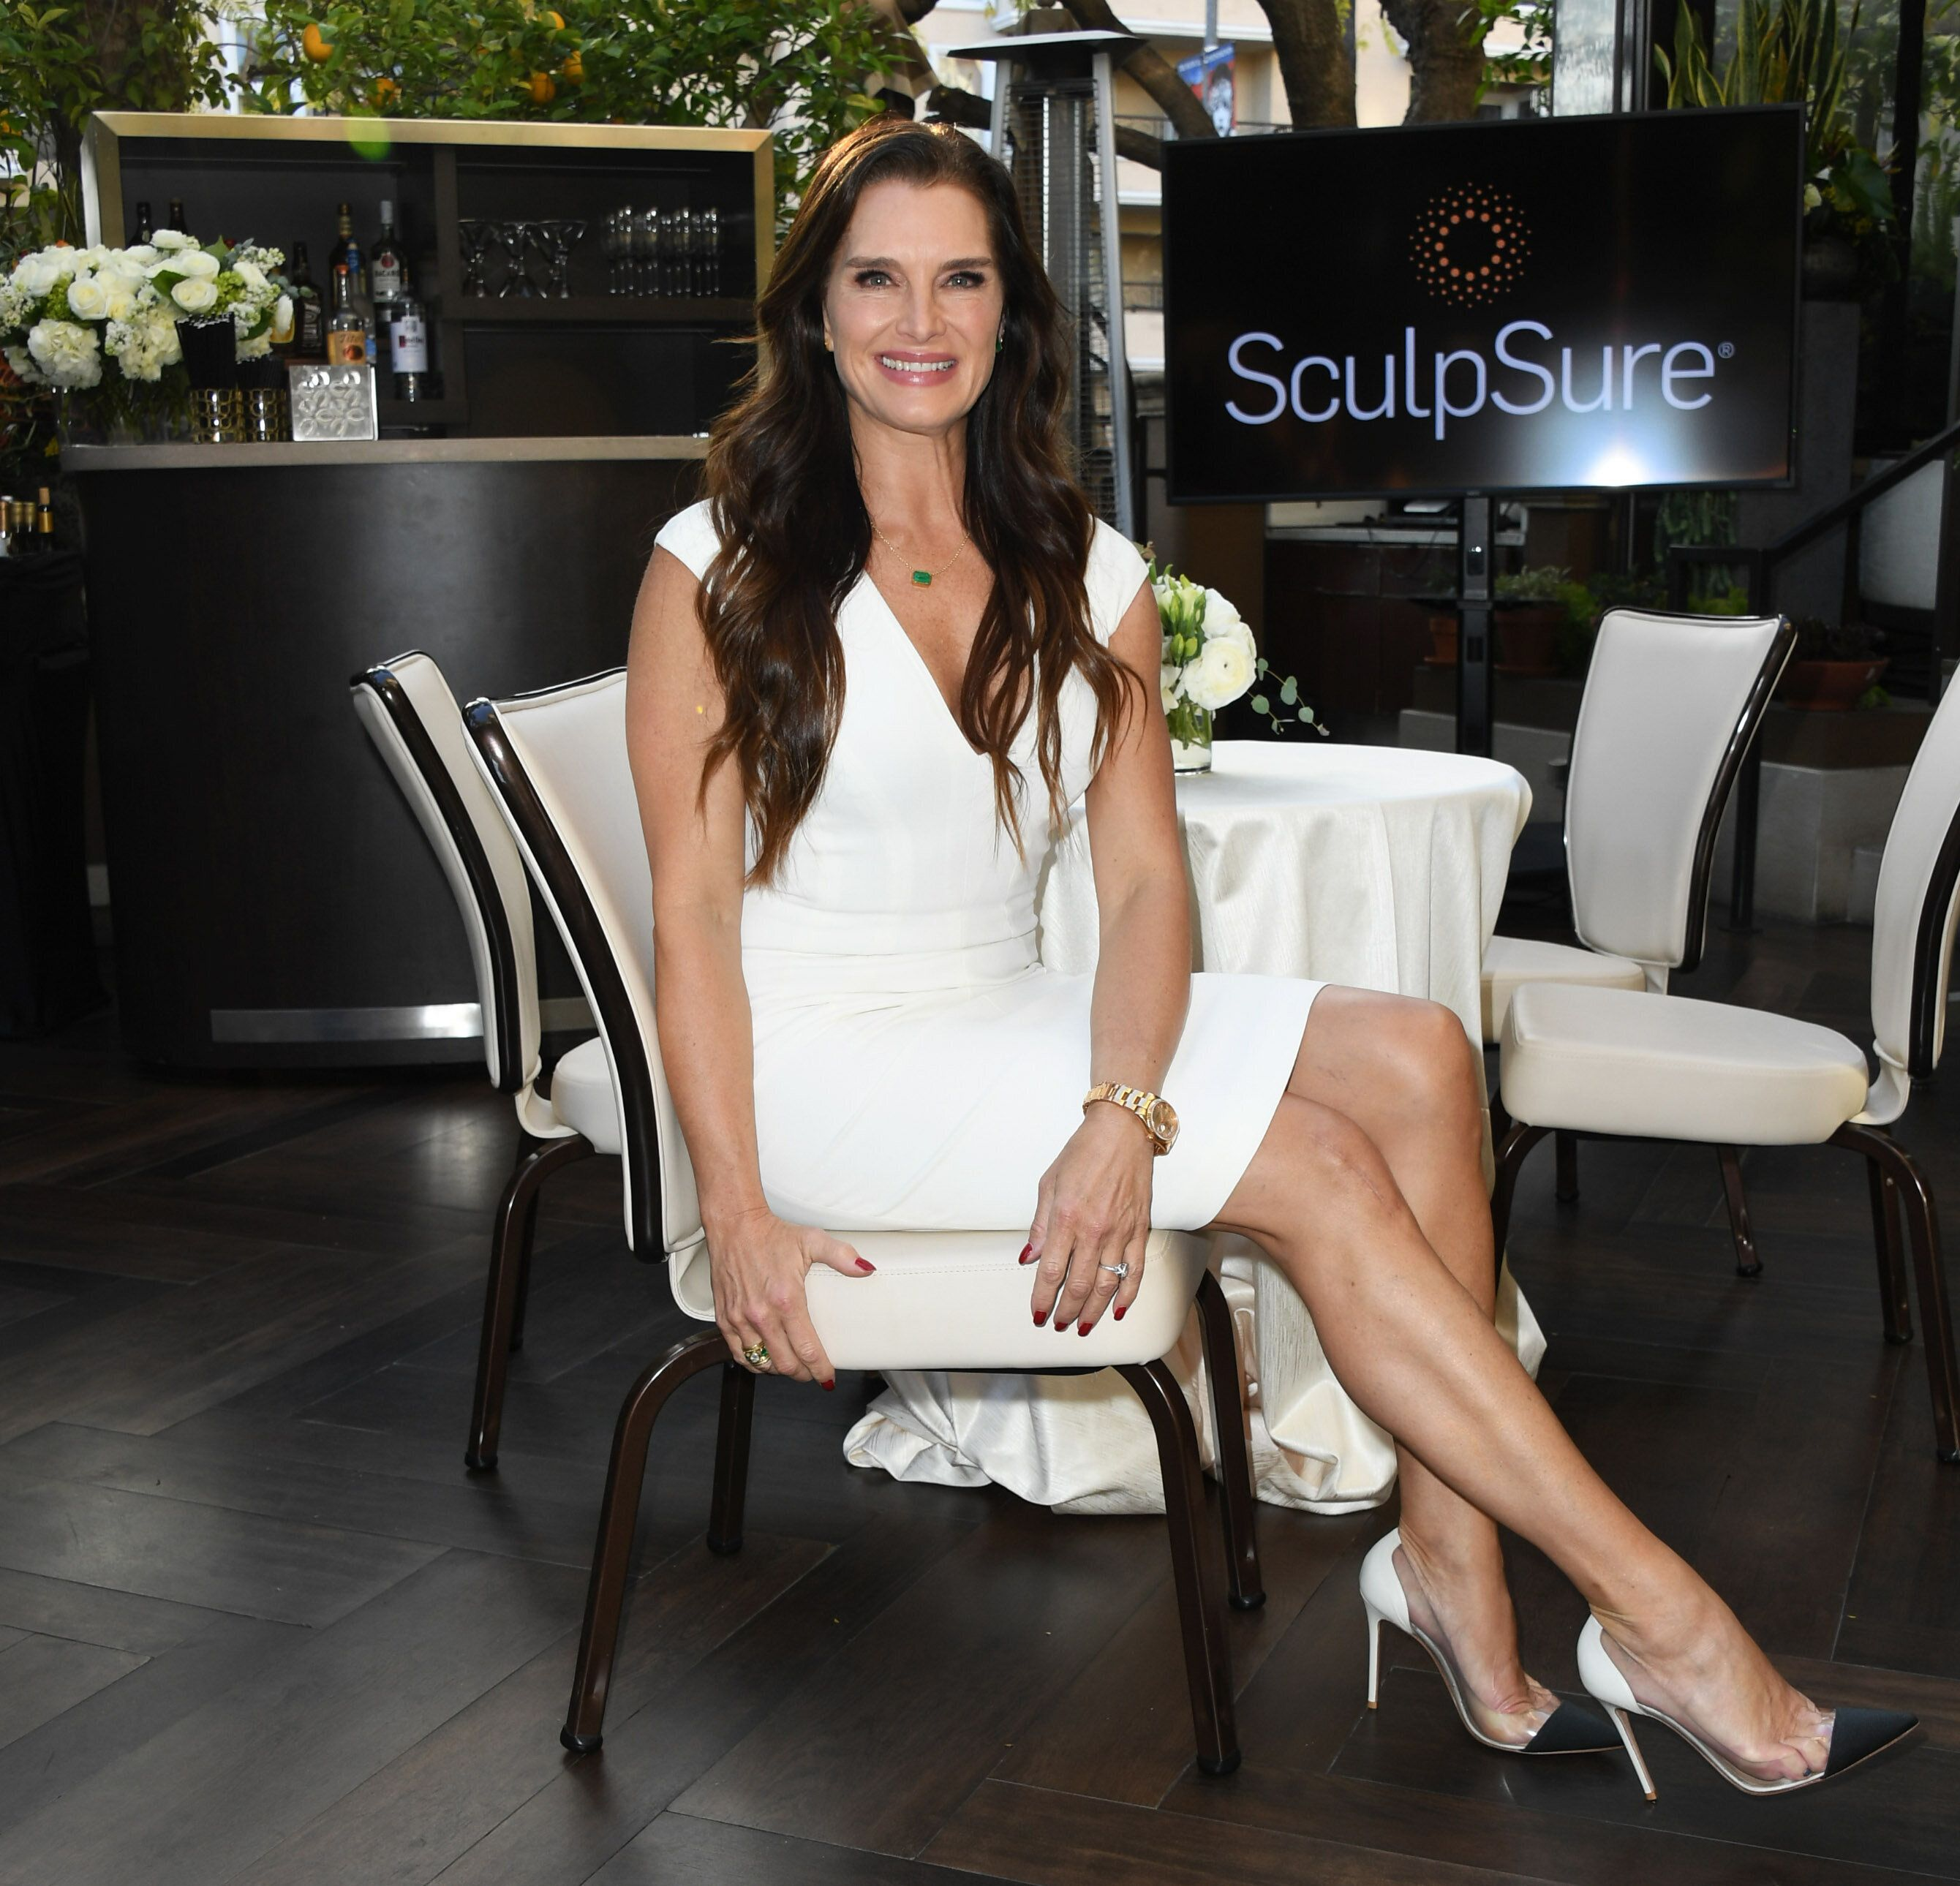 Brooke Shields works hard to look this good. (Photo: Jon Kopaloff/Getty Images)